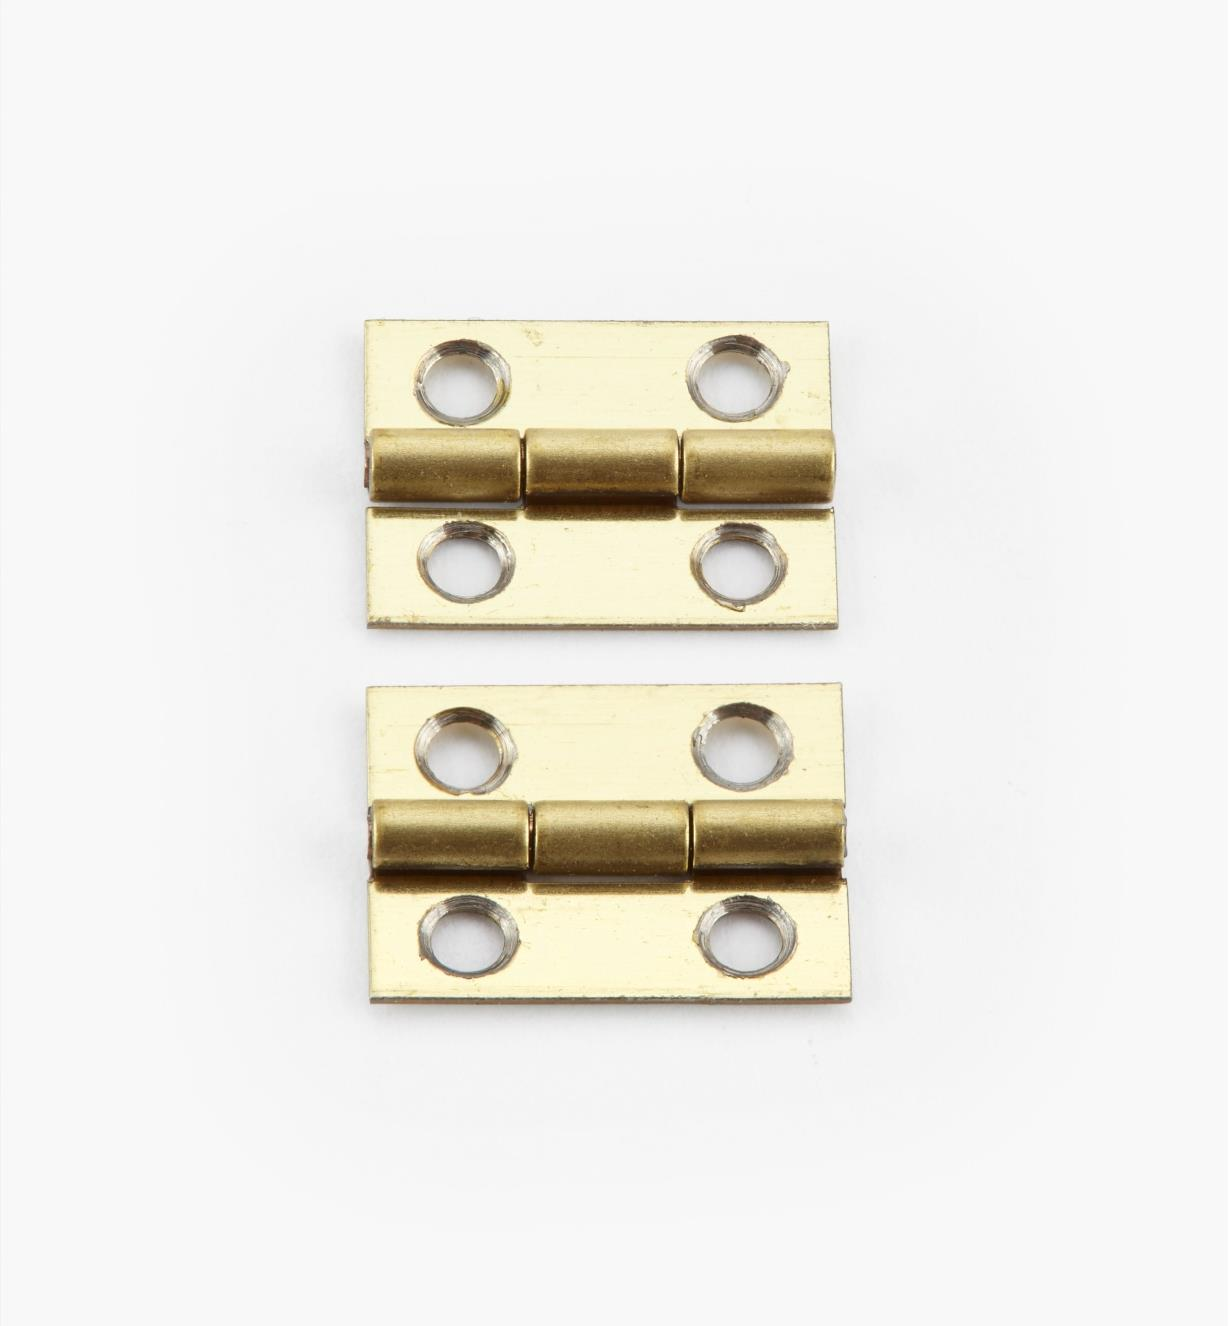 00D3050 - 12mm x 9mm Small Box Hinges, pr.